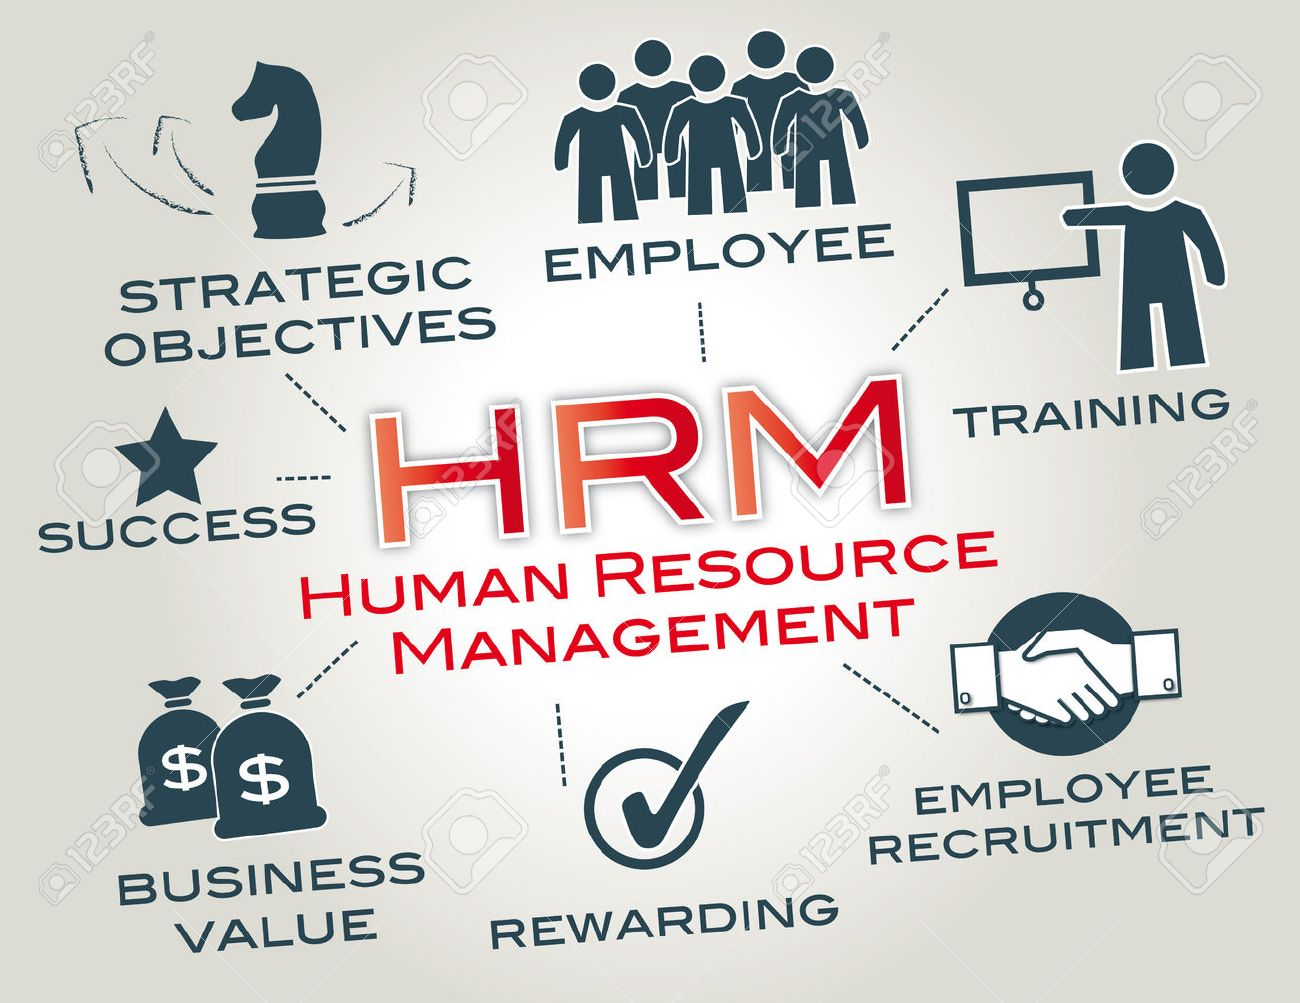 27951917-human-resource-management-is-a-function-in-organizations-designed-to-maximize-employee-performance-i